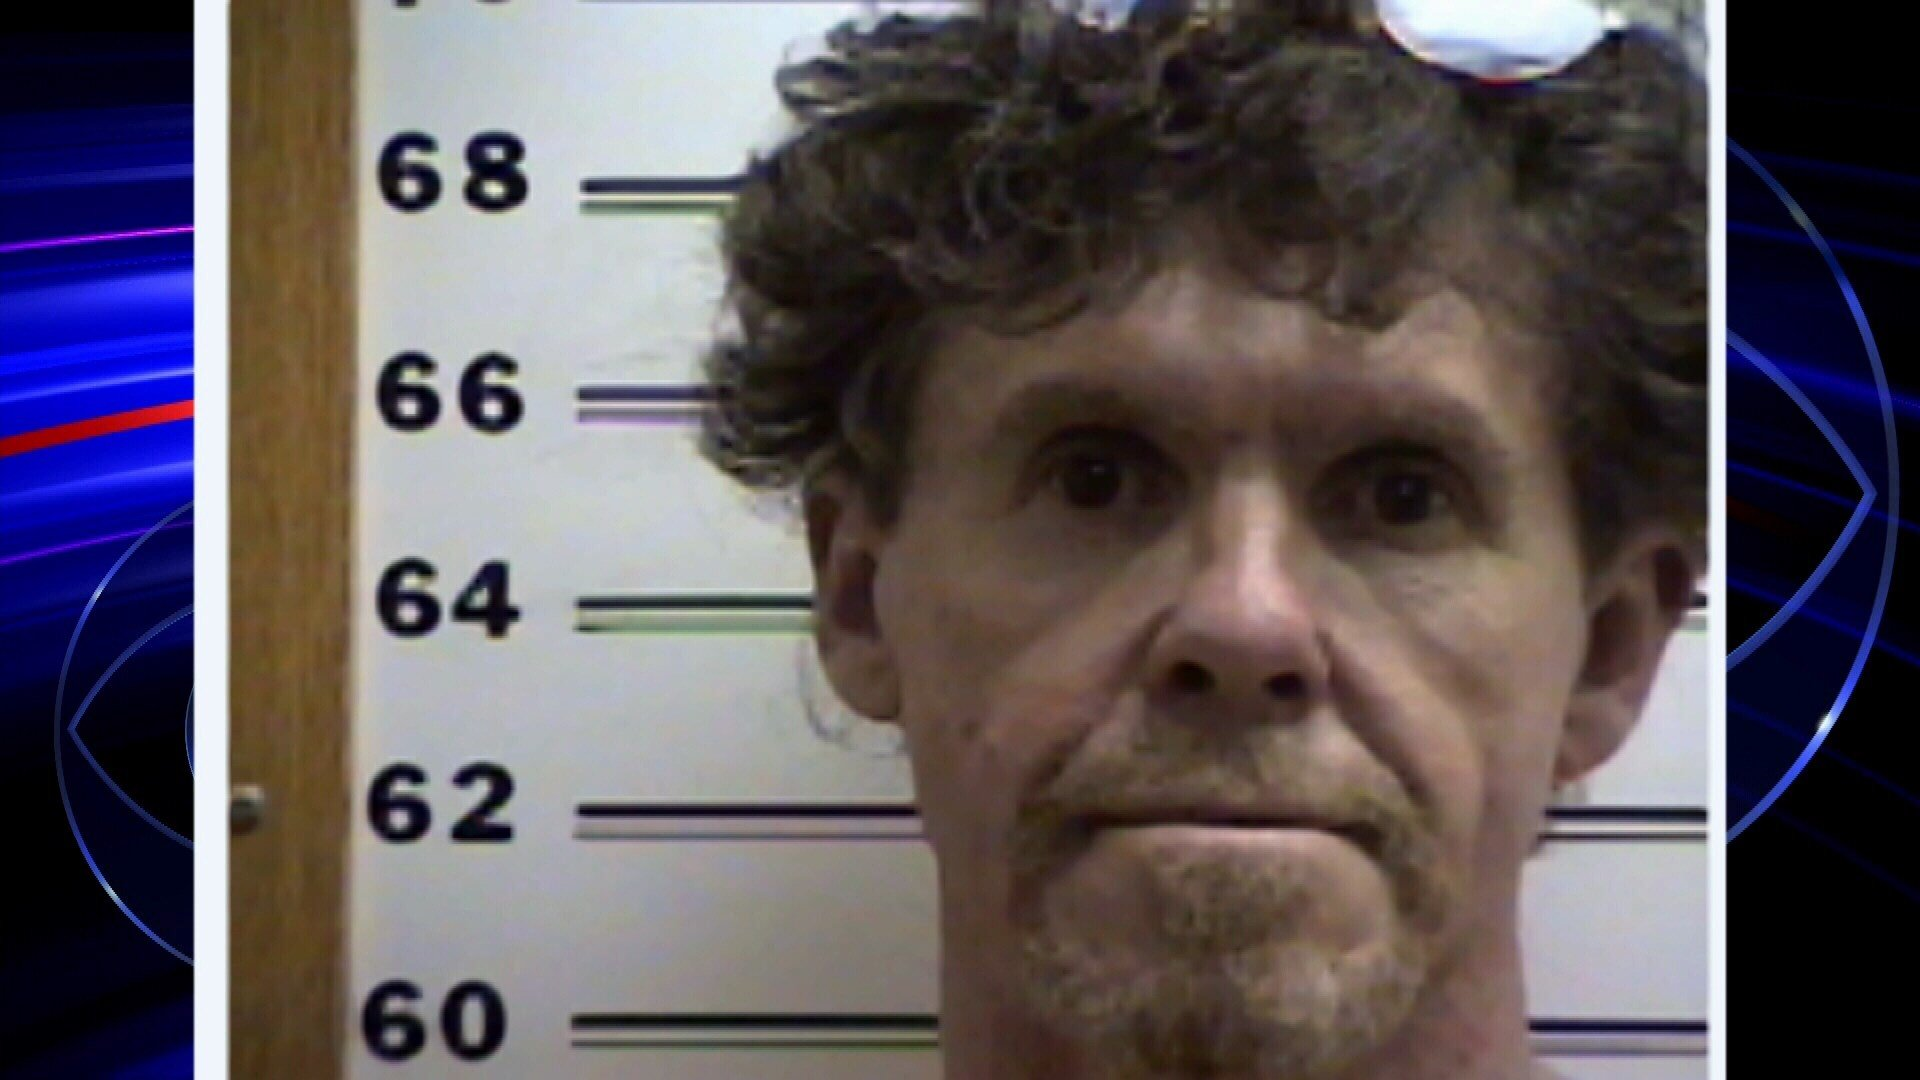 Ronnie Dean Busick transferred to Craig County Jail